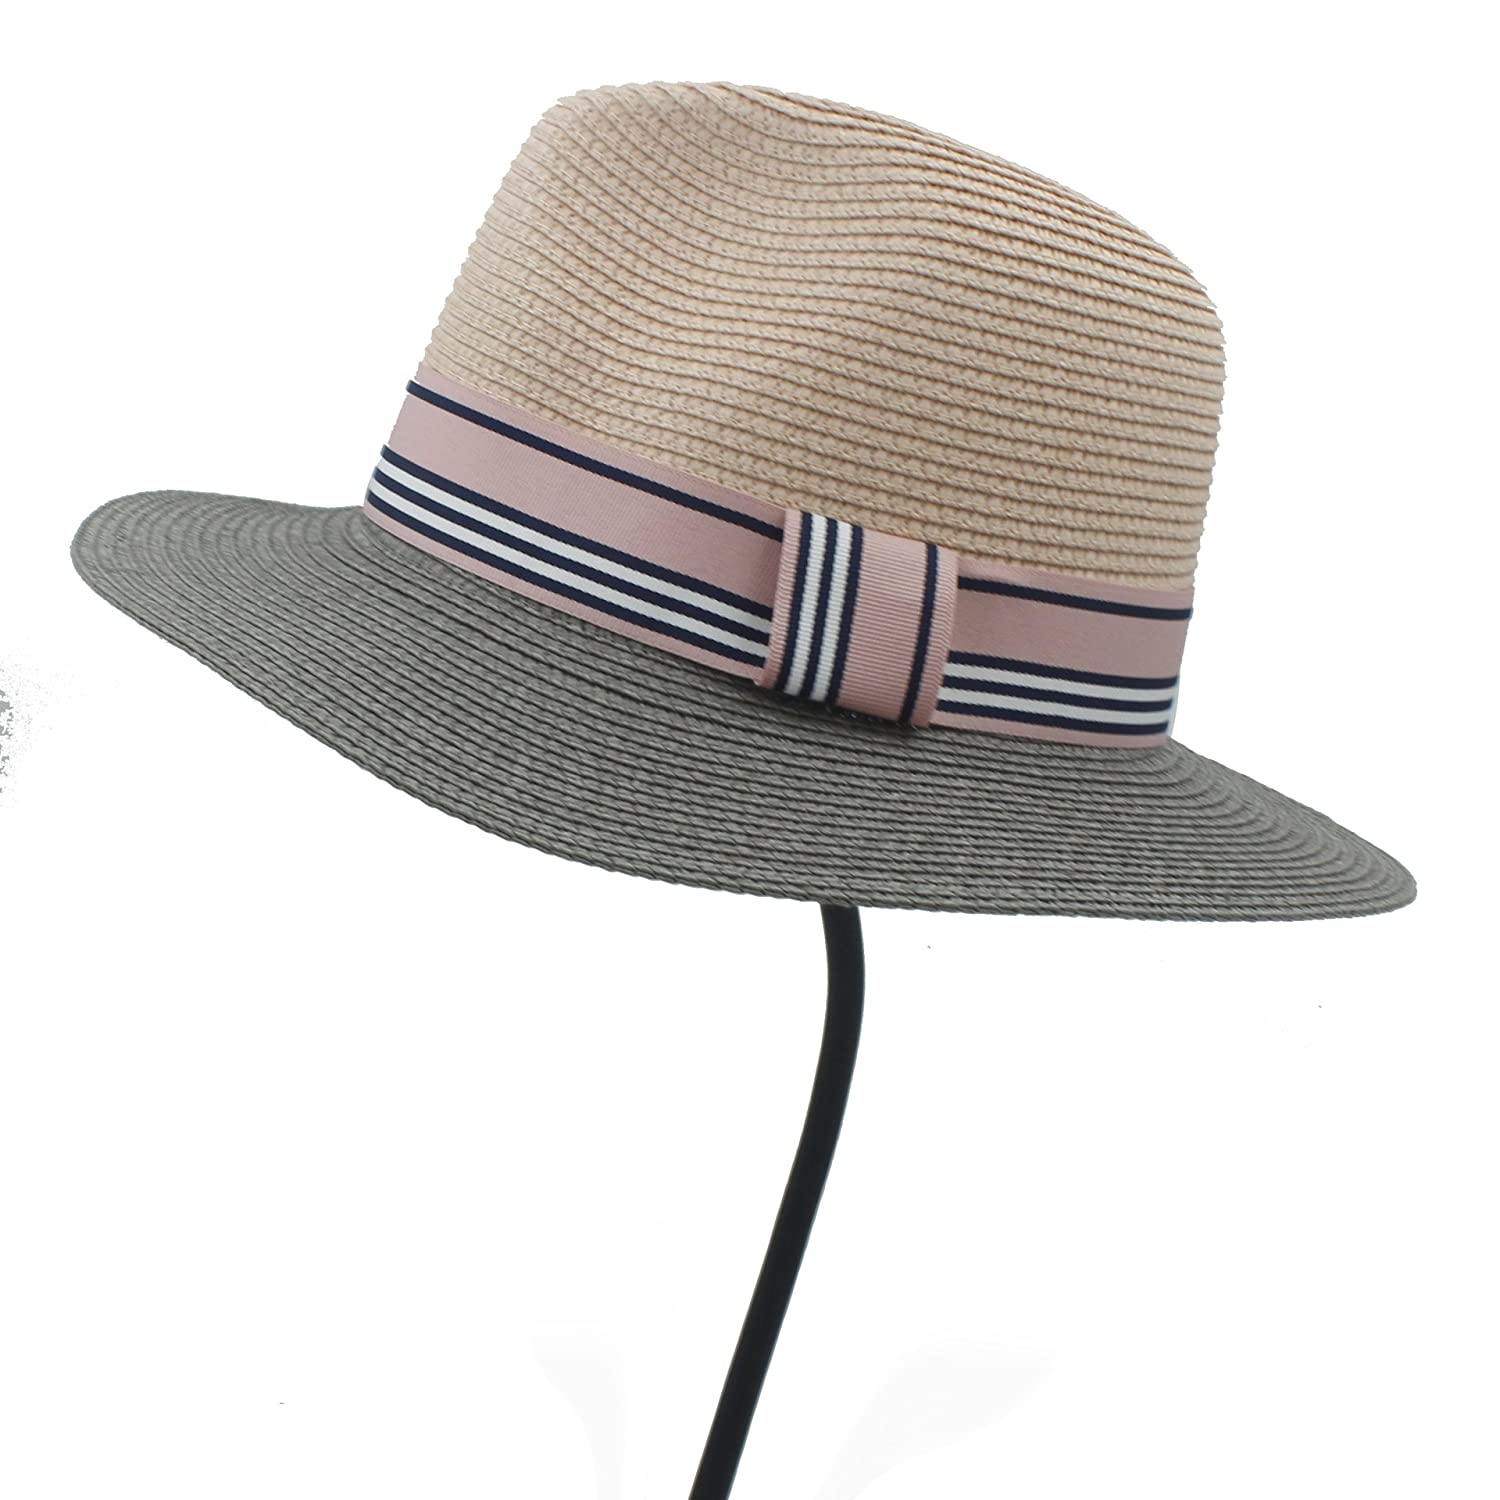 Women Summer straw Sun hat Boho Beach wide Brim Fedora hat Sunhat Trilby  panama Hat Gangster sombrero Cap 21 at Amazon Women s Clothing store  504f9294b98